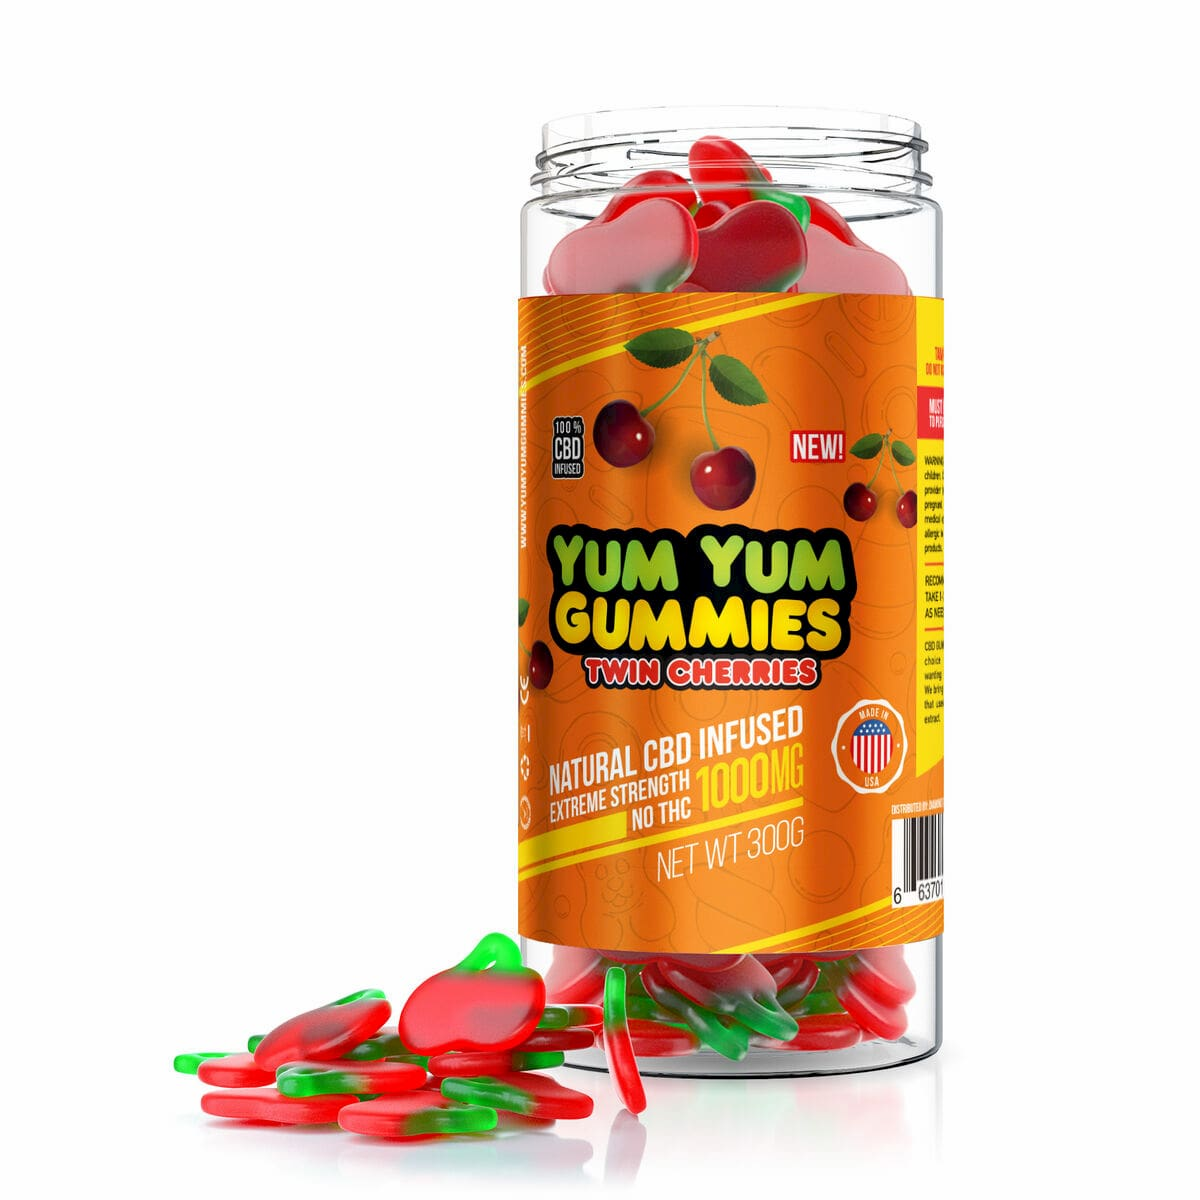 Yum Yum Gummies, CBD Gummies, Twin Cherries, 300g, 1000mg of CBD2 (1)